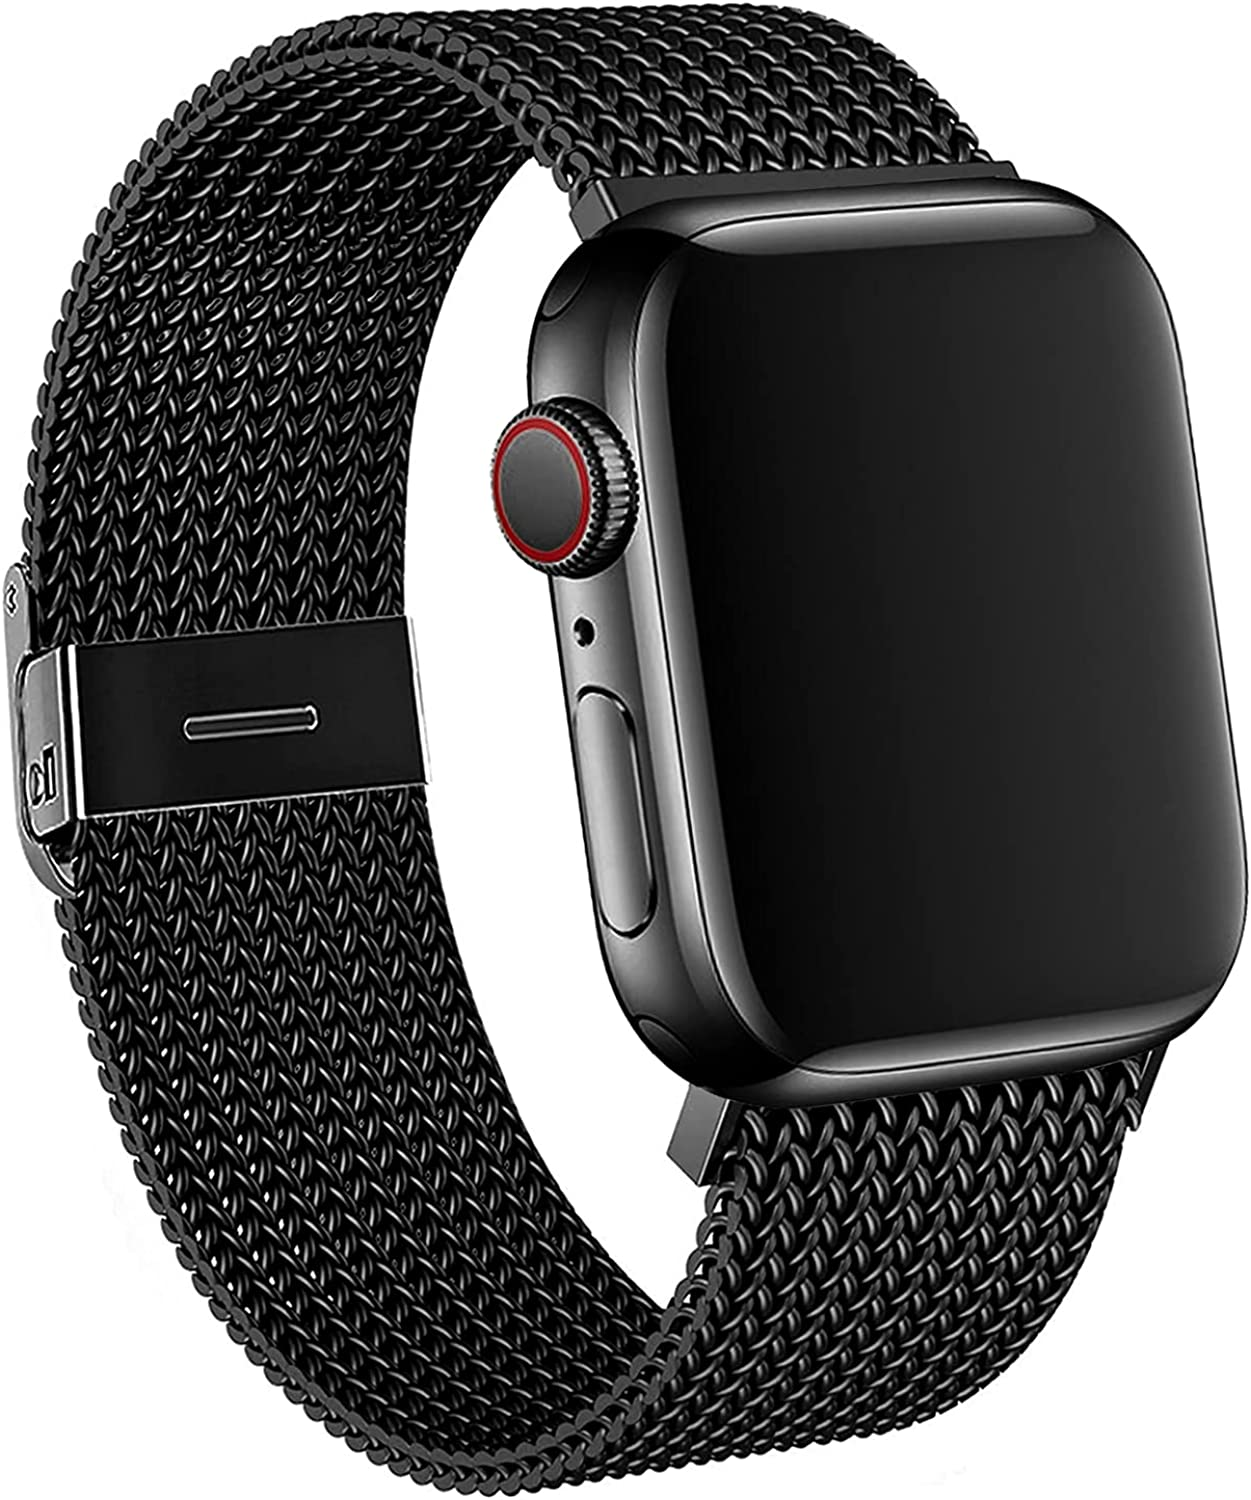 ELKTION Pack 4 Strap Compatible with Apple Watch Strap 38mm 40mm, Soft Silicone Sport Replacement Watchband for iWatch Series 5/4/3/2/1